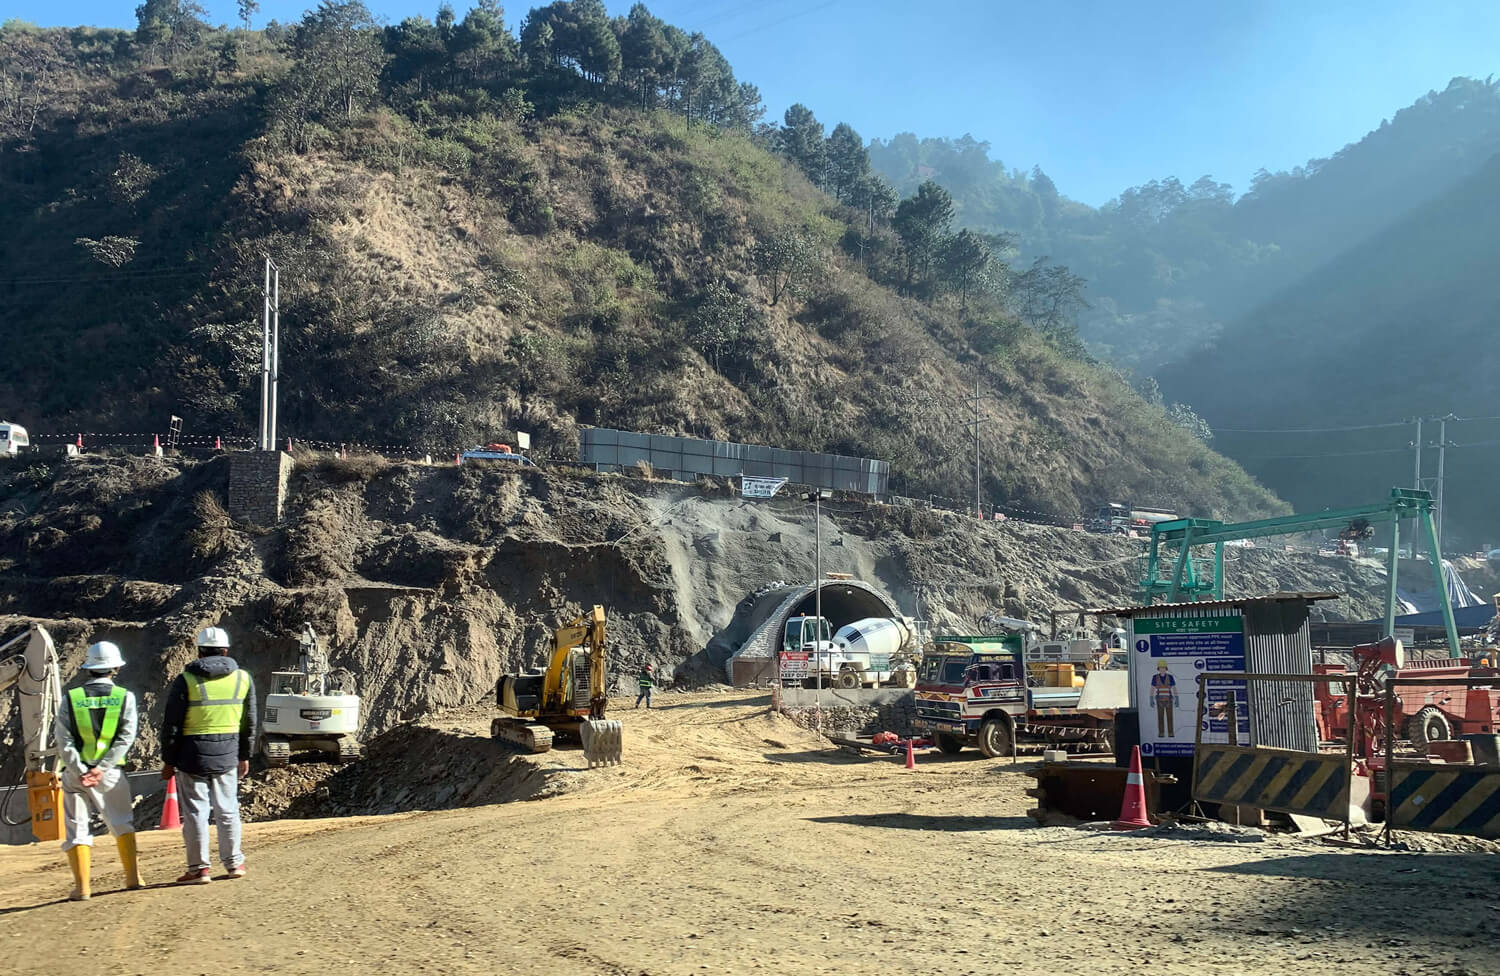 A 2.38km highway tunnel under construction that will connect Nagdhunga to Kathmandu, shortening travel time by 45 minutes.